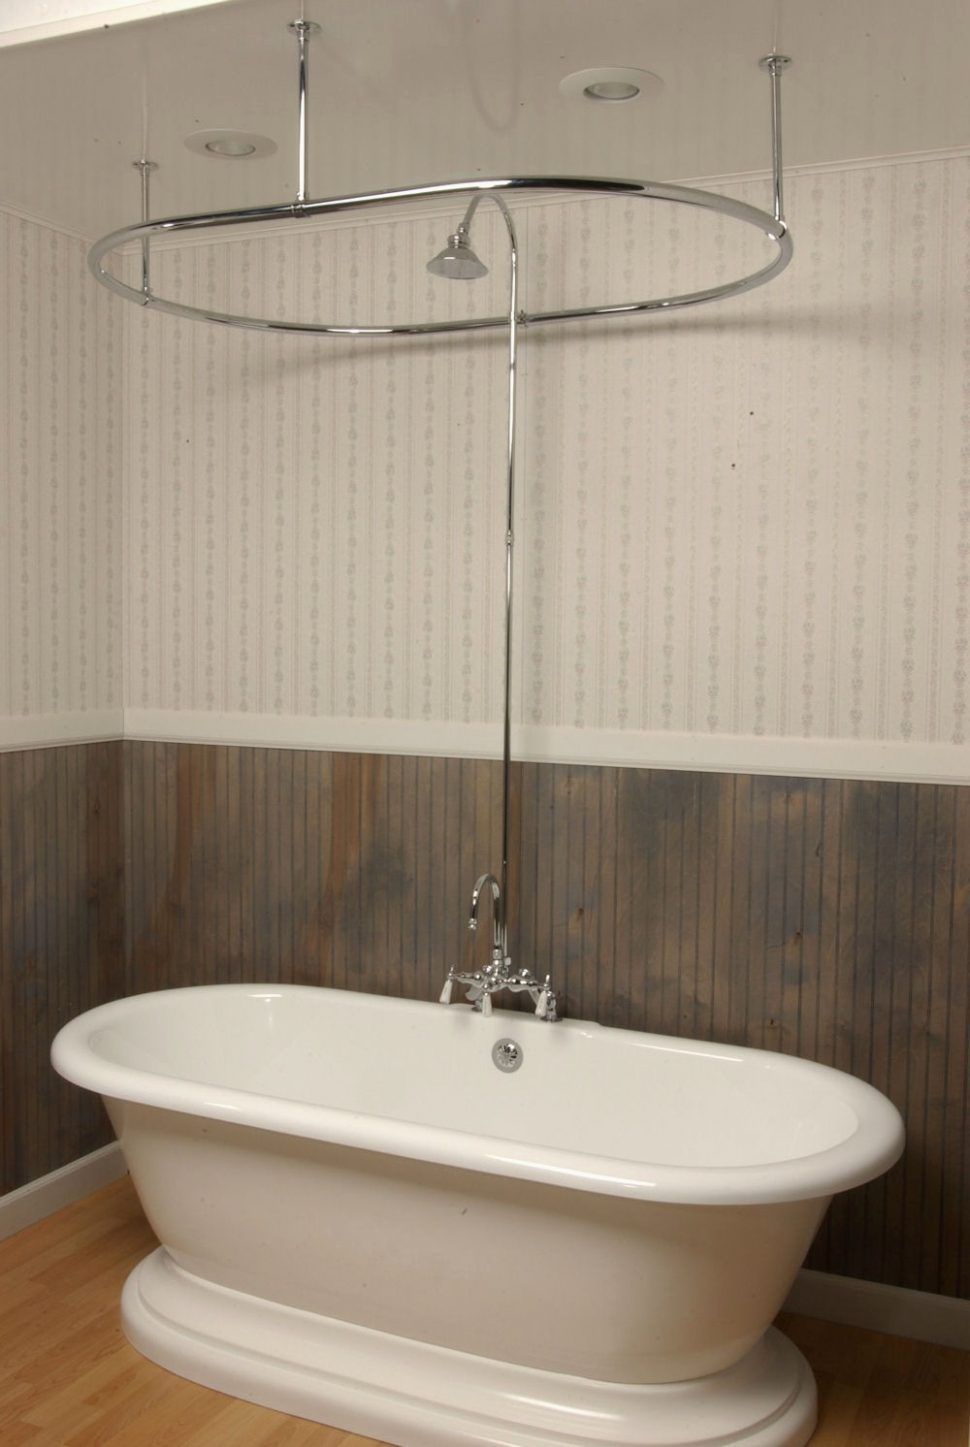 Curtains Faucet For Clawfoot Tub With Shower Attachment Fresh